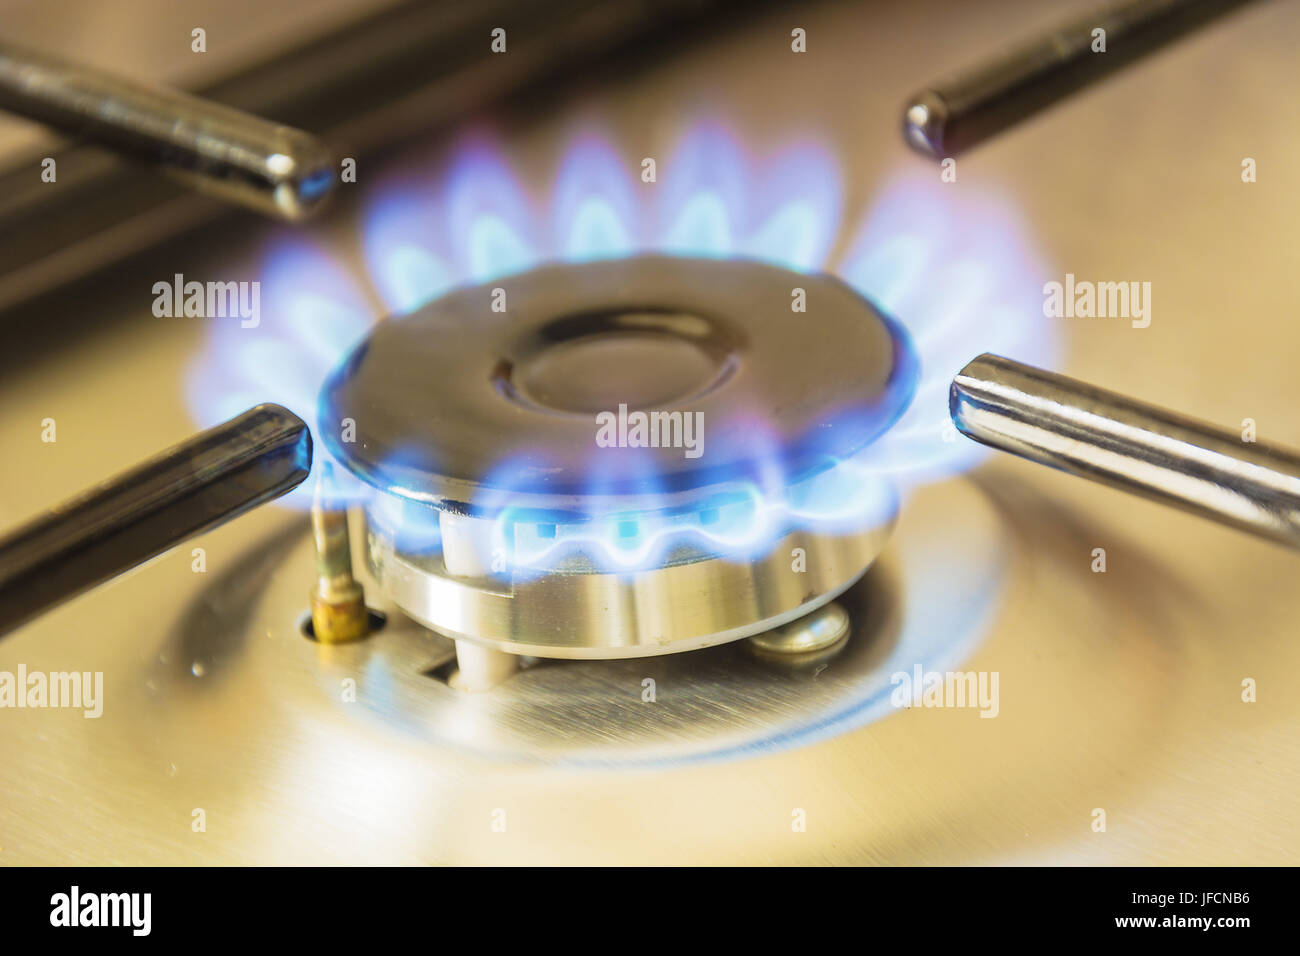 gas burning from a stove - Stock Image